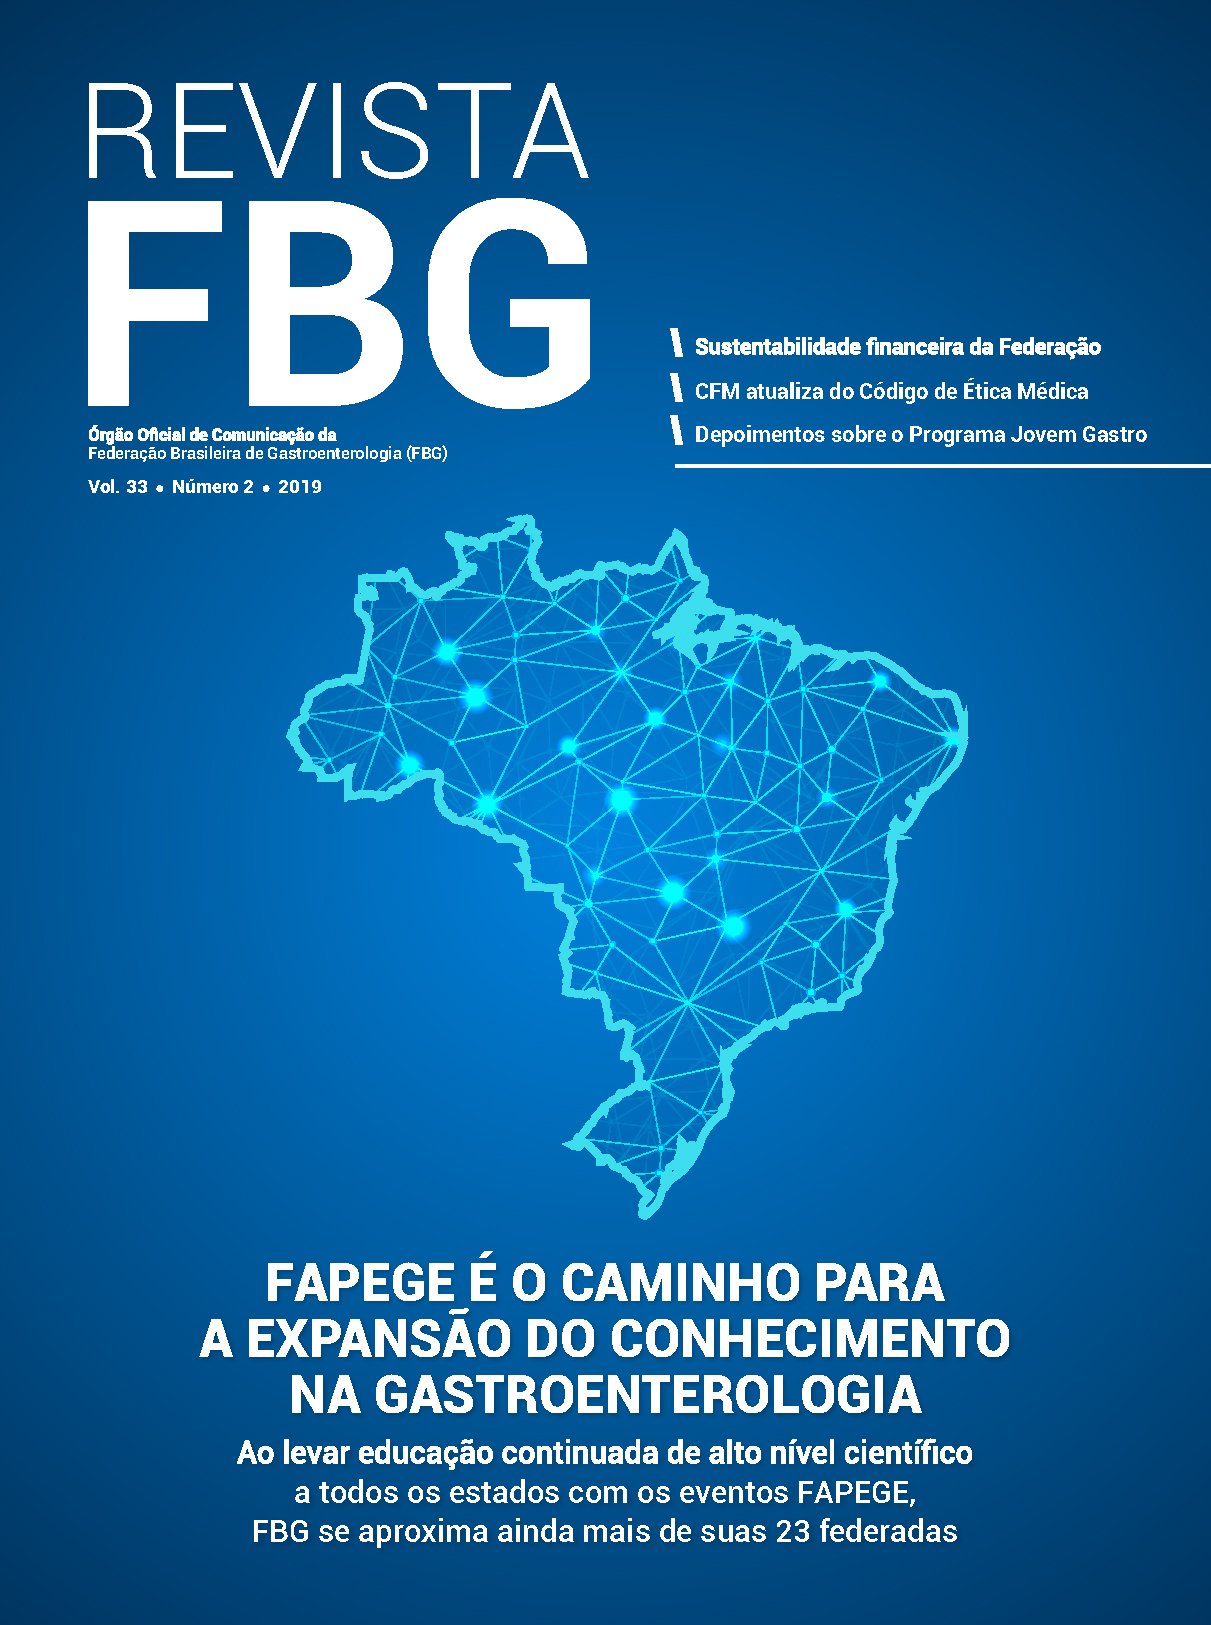 Revista FBG Vol. 33 Nº 2 - 2019